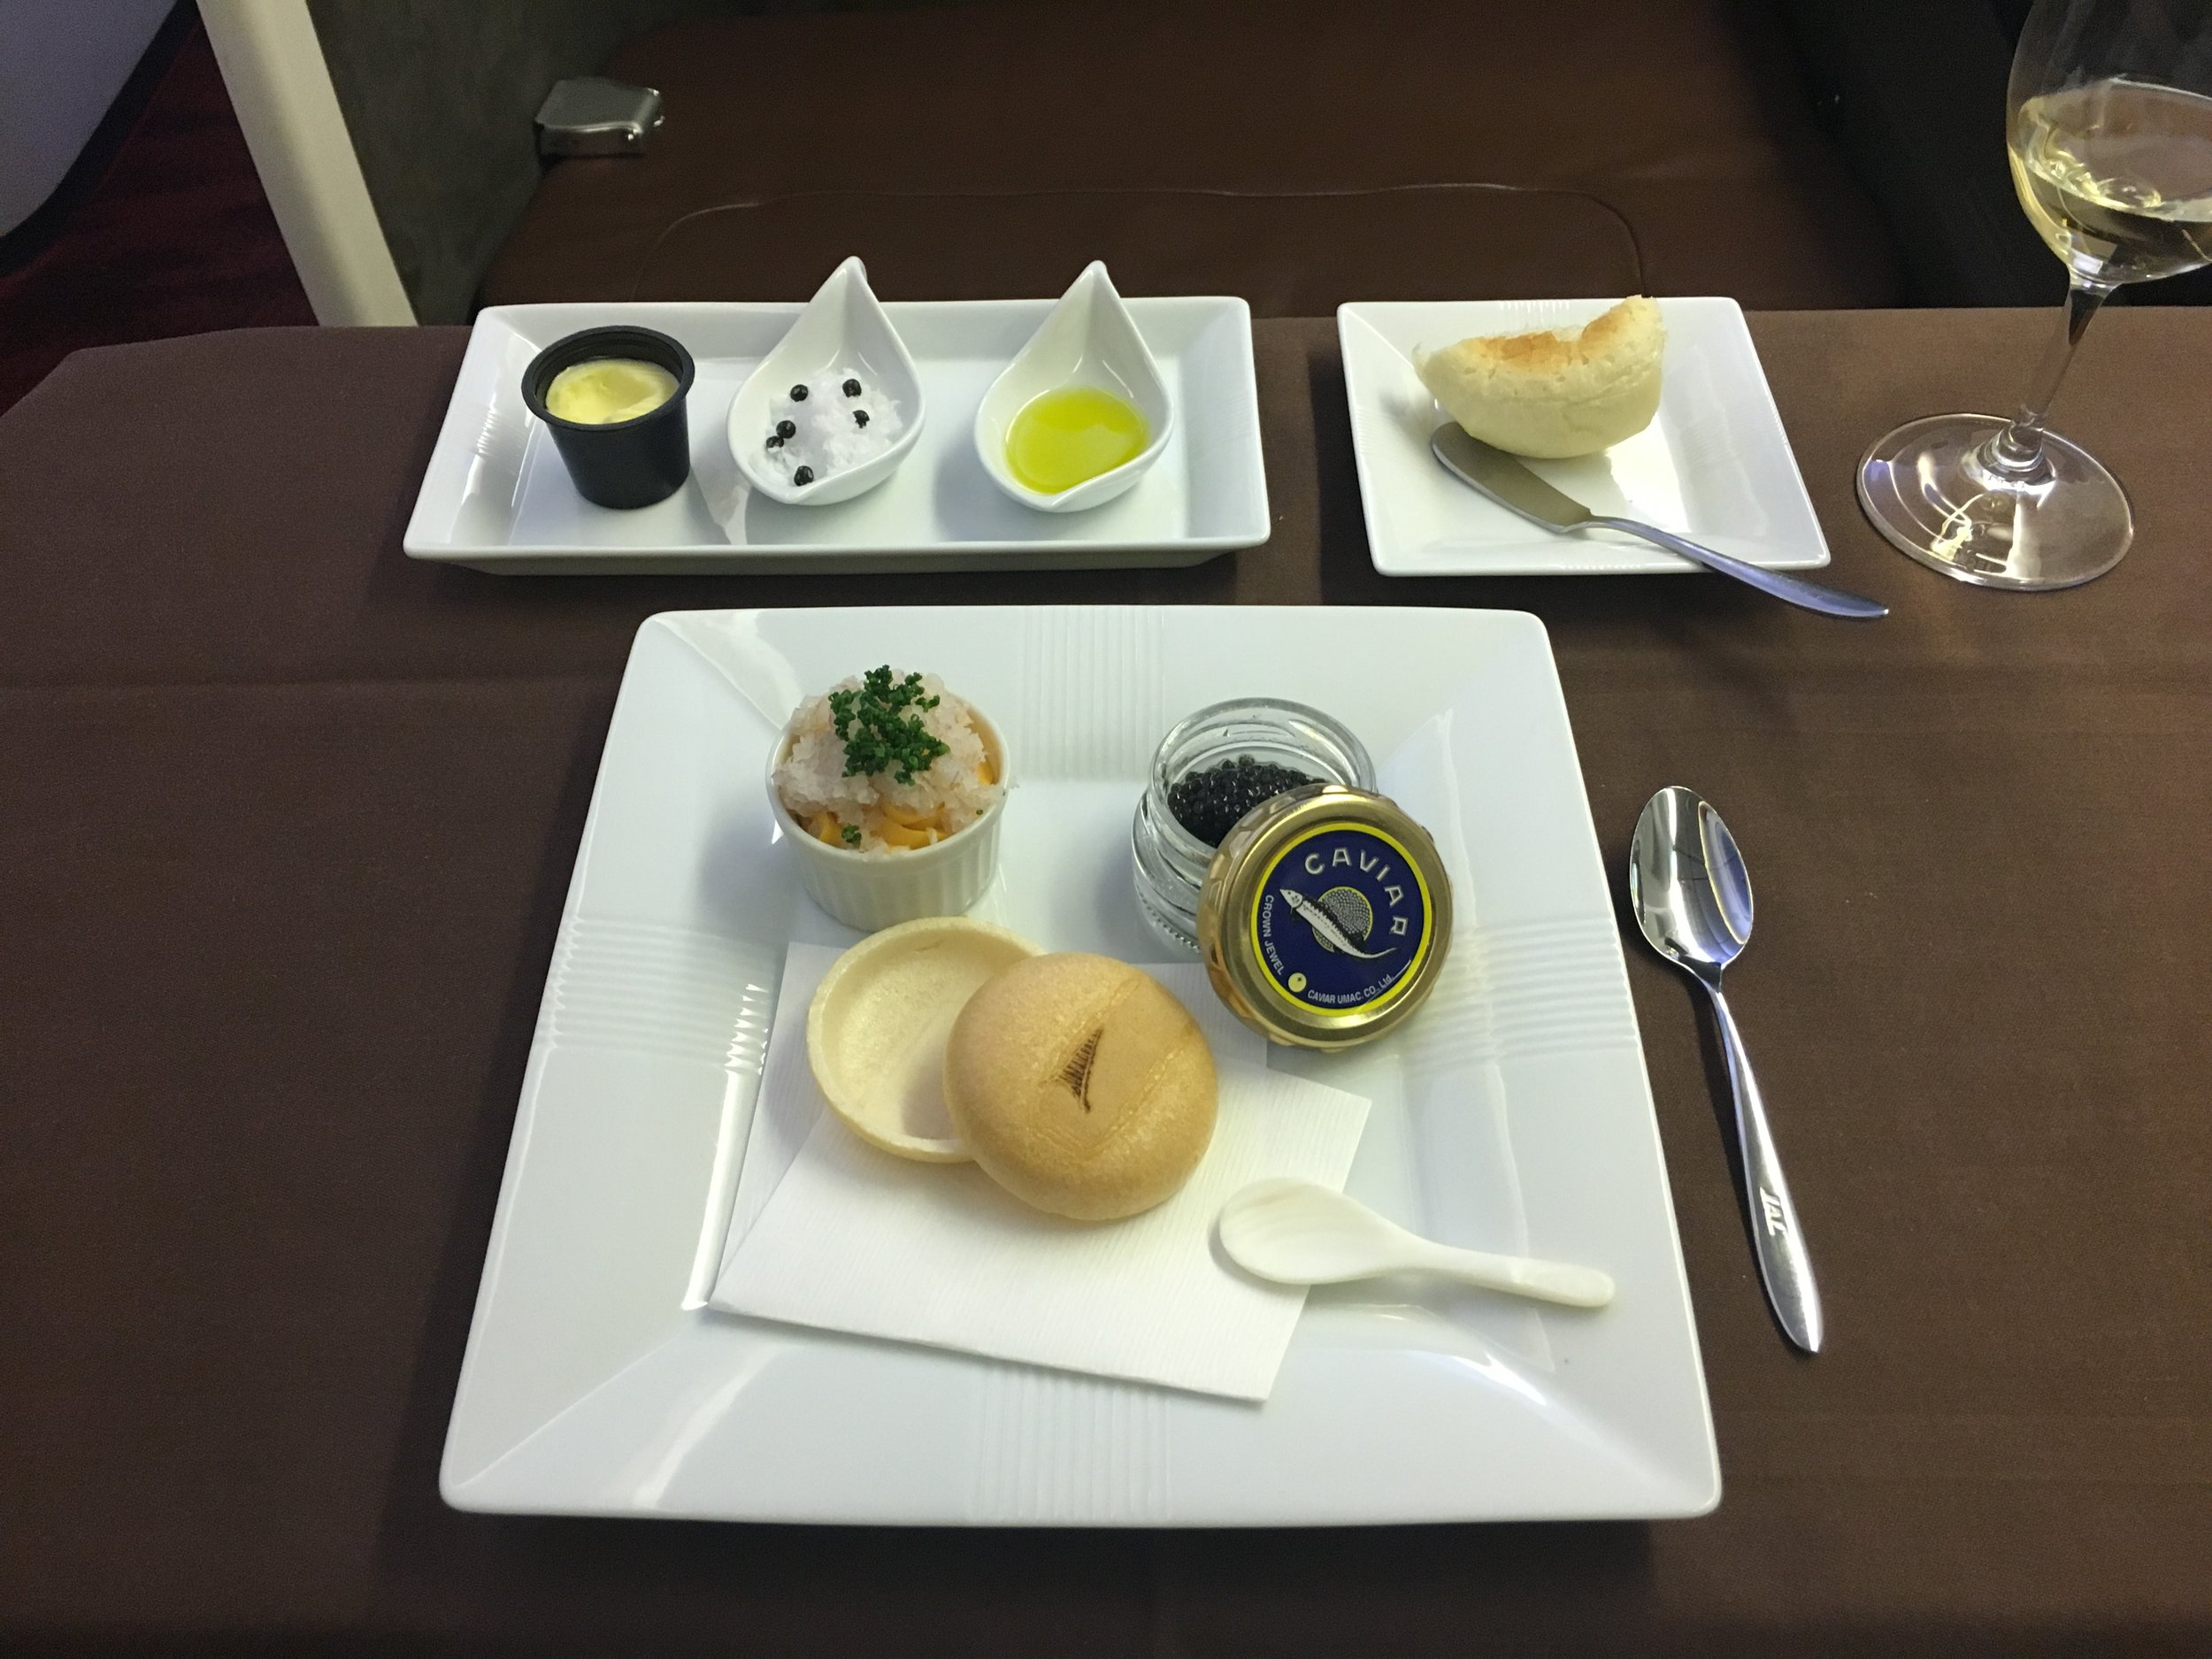 The caviar course was obviously quite an indulgent treat especially when paired with the Cristal… It was also kind of fun to work out how to assemble the egg yolk cream, caviar, and wafers.